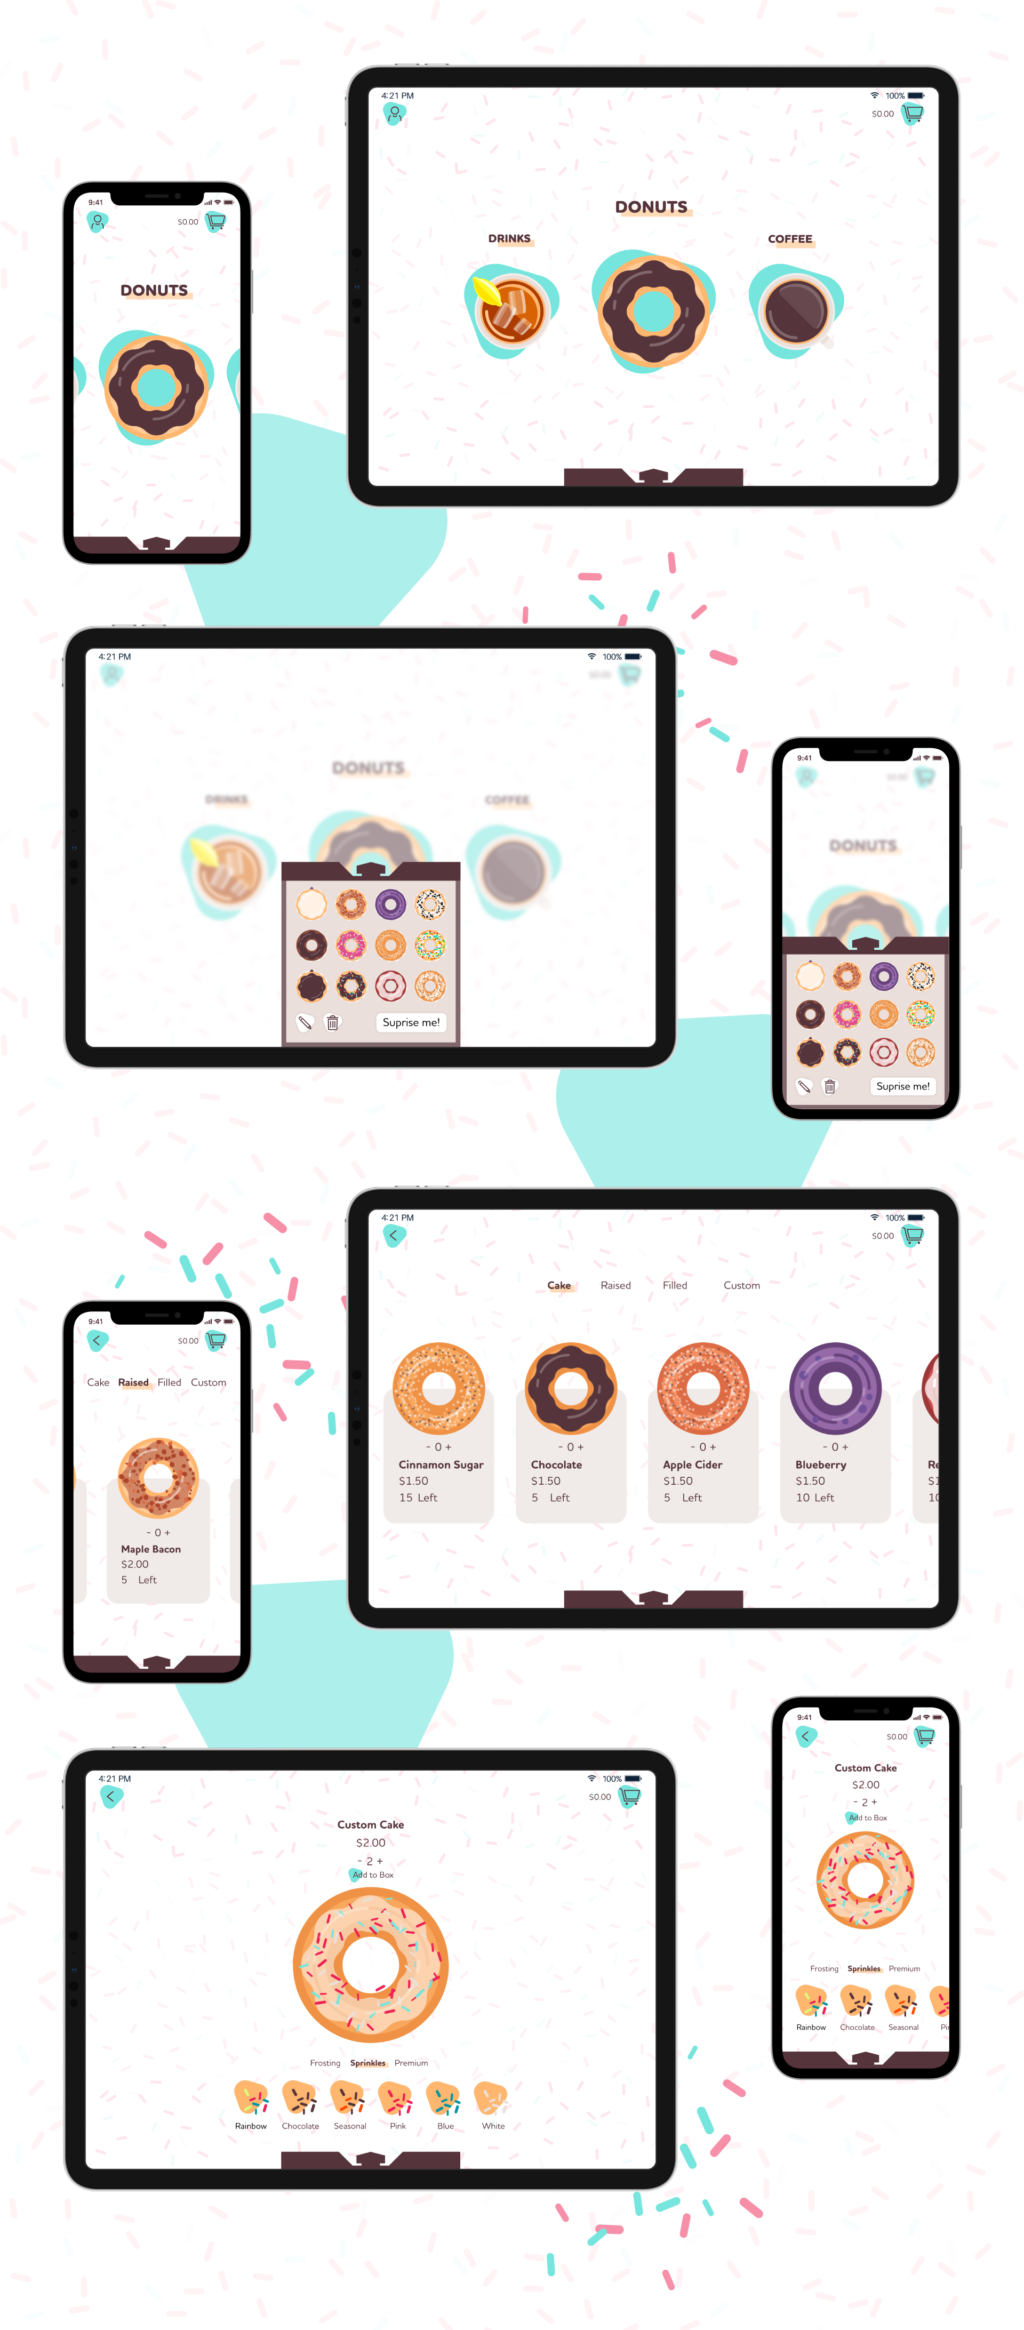 Anything Doughs app displayed on various screen sizes, tablets and phones. The menu selection screen, the adding a donut to your box screen, and the customize your donut screen.